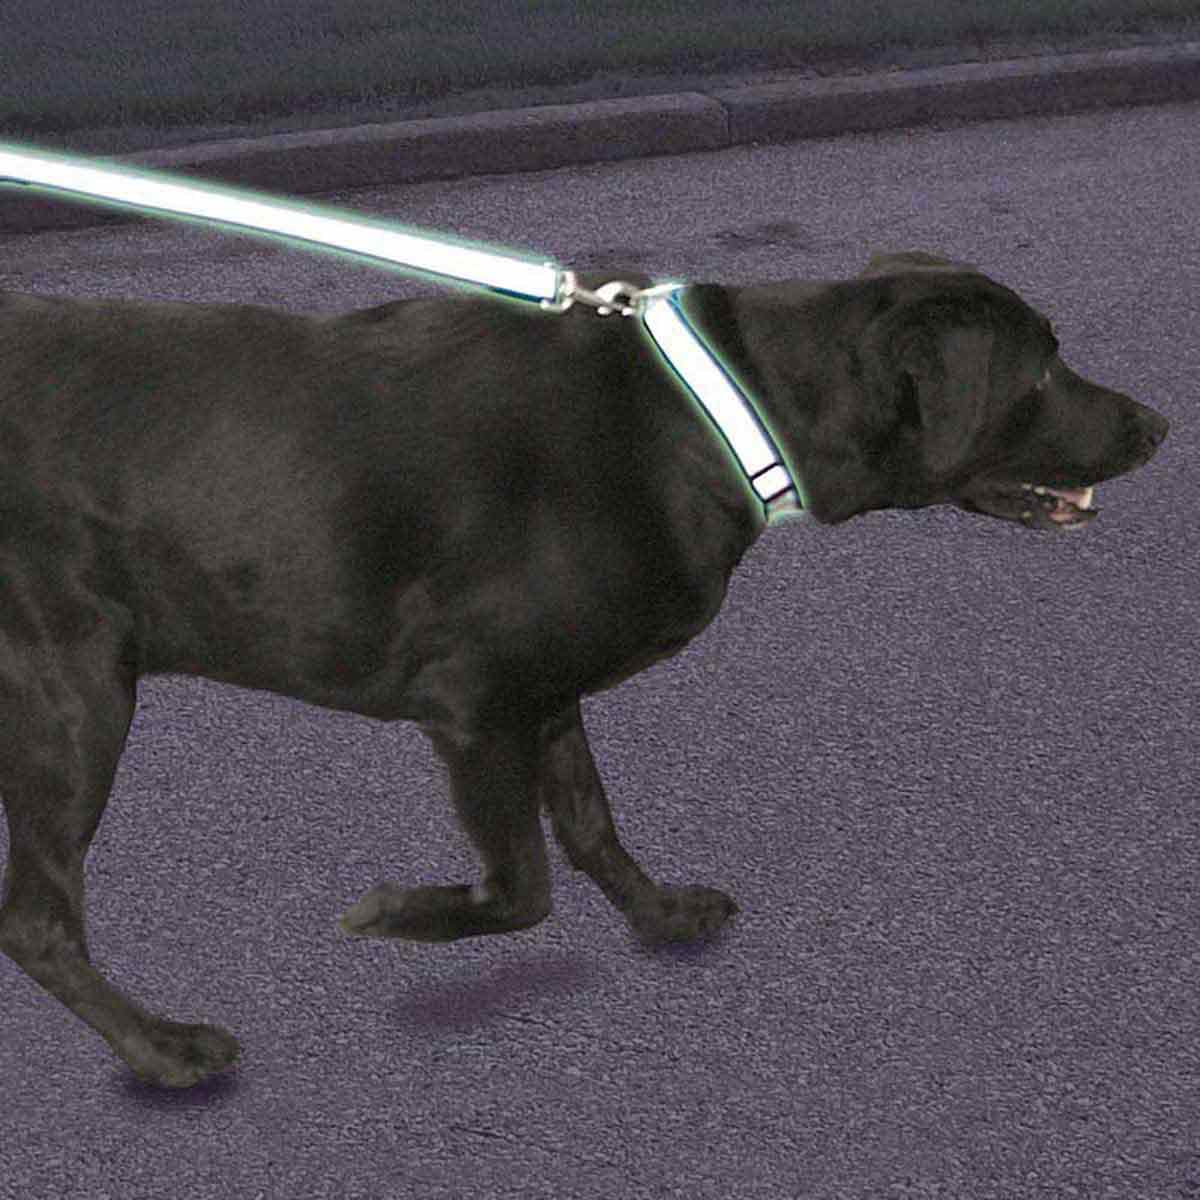 Example of Dog Wearing Coastal Lazer Brite Reflective Adjustable Dog Collar - 1 in by 18-28 inches